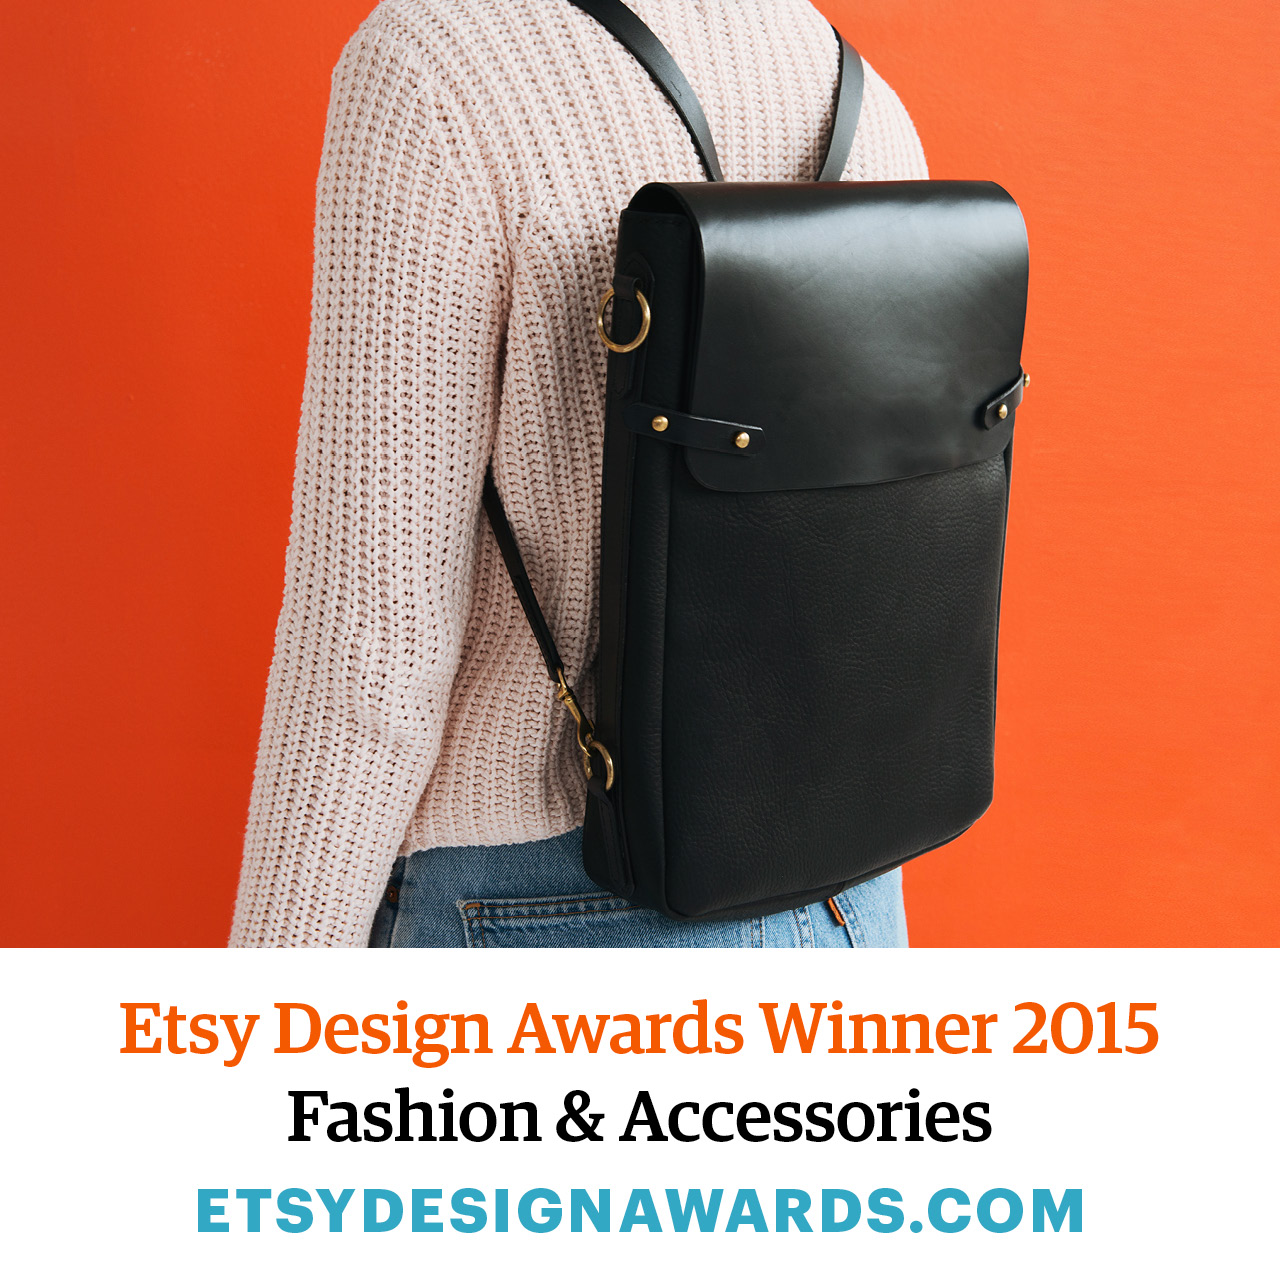 etsy-design-awards.jpg